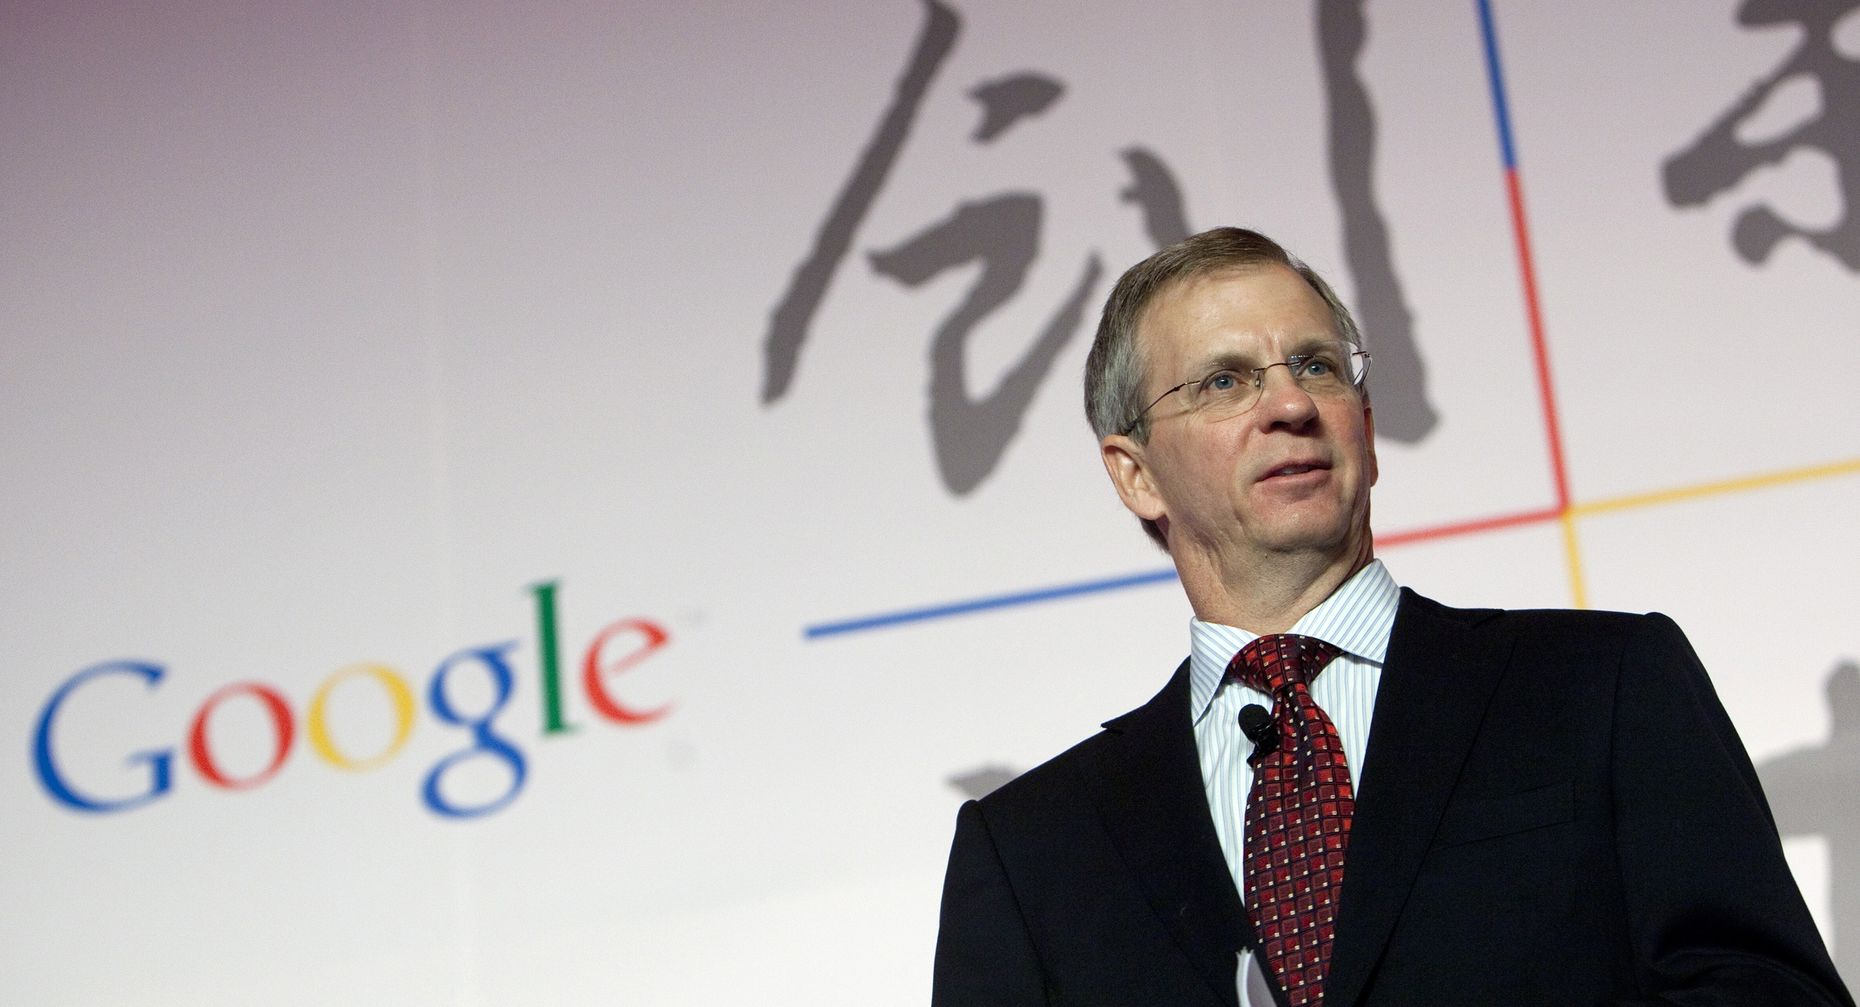 Alan Eustace oversees Google's search organization.